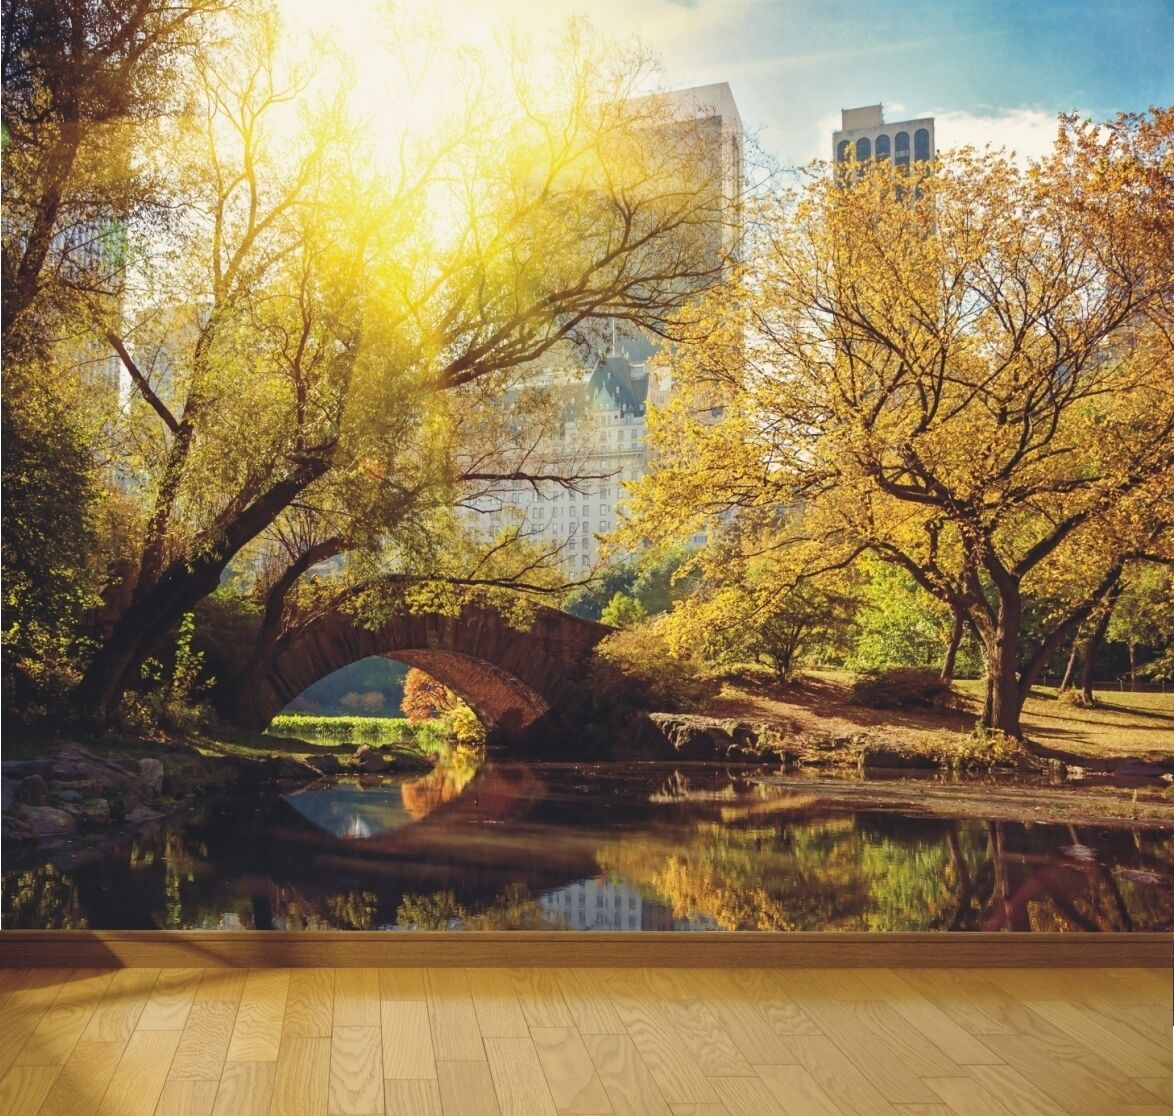 New York central park in the sun wallpaper mural design wm433